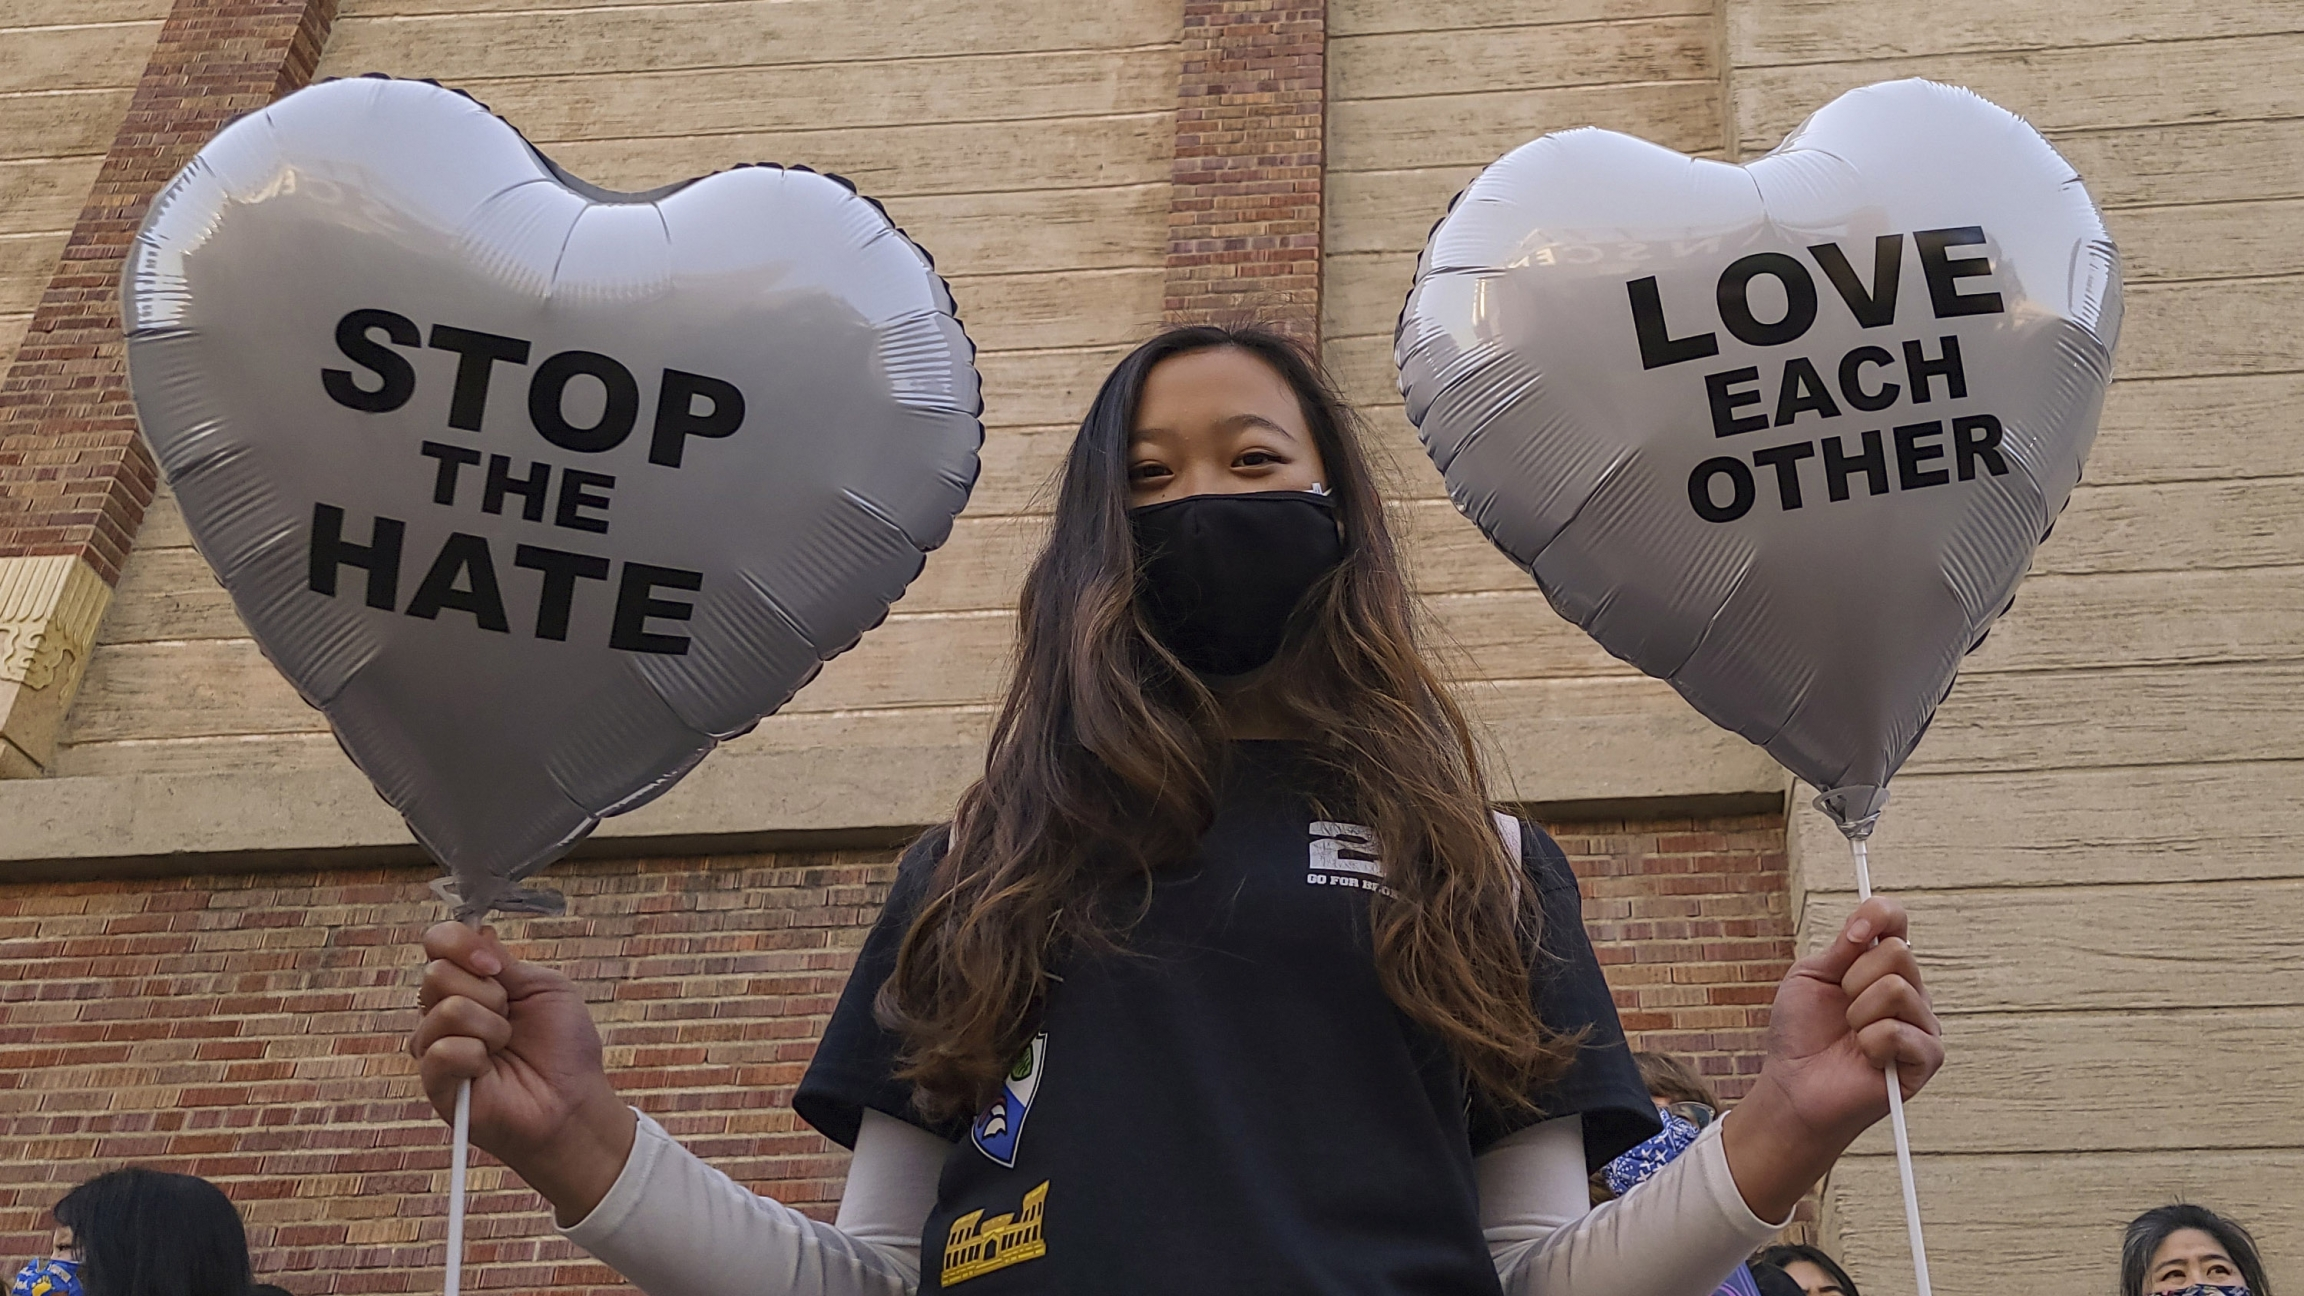 A young person holds up two balloons in heart-shapes that read Stop the Hate and Love Each Other